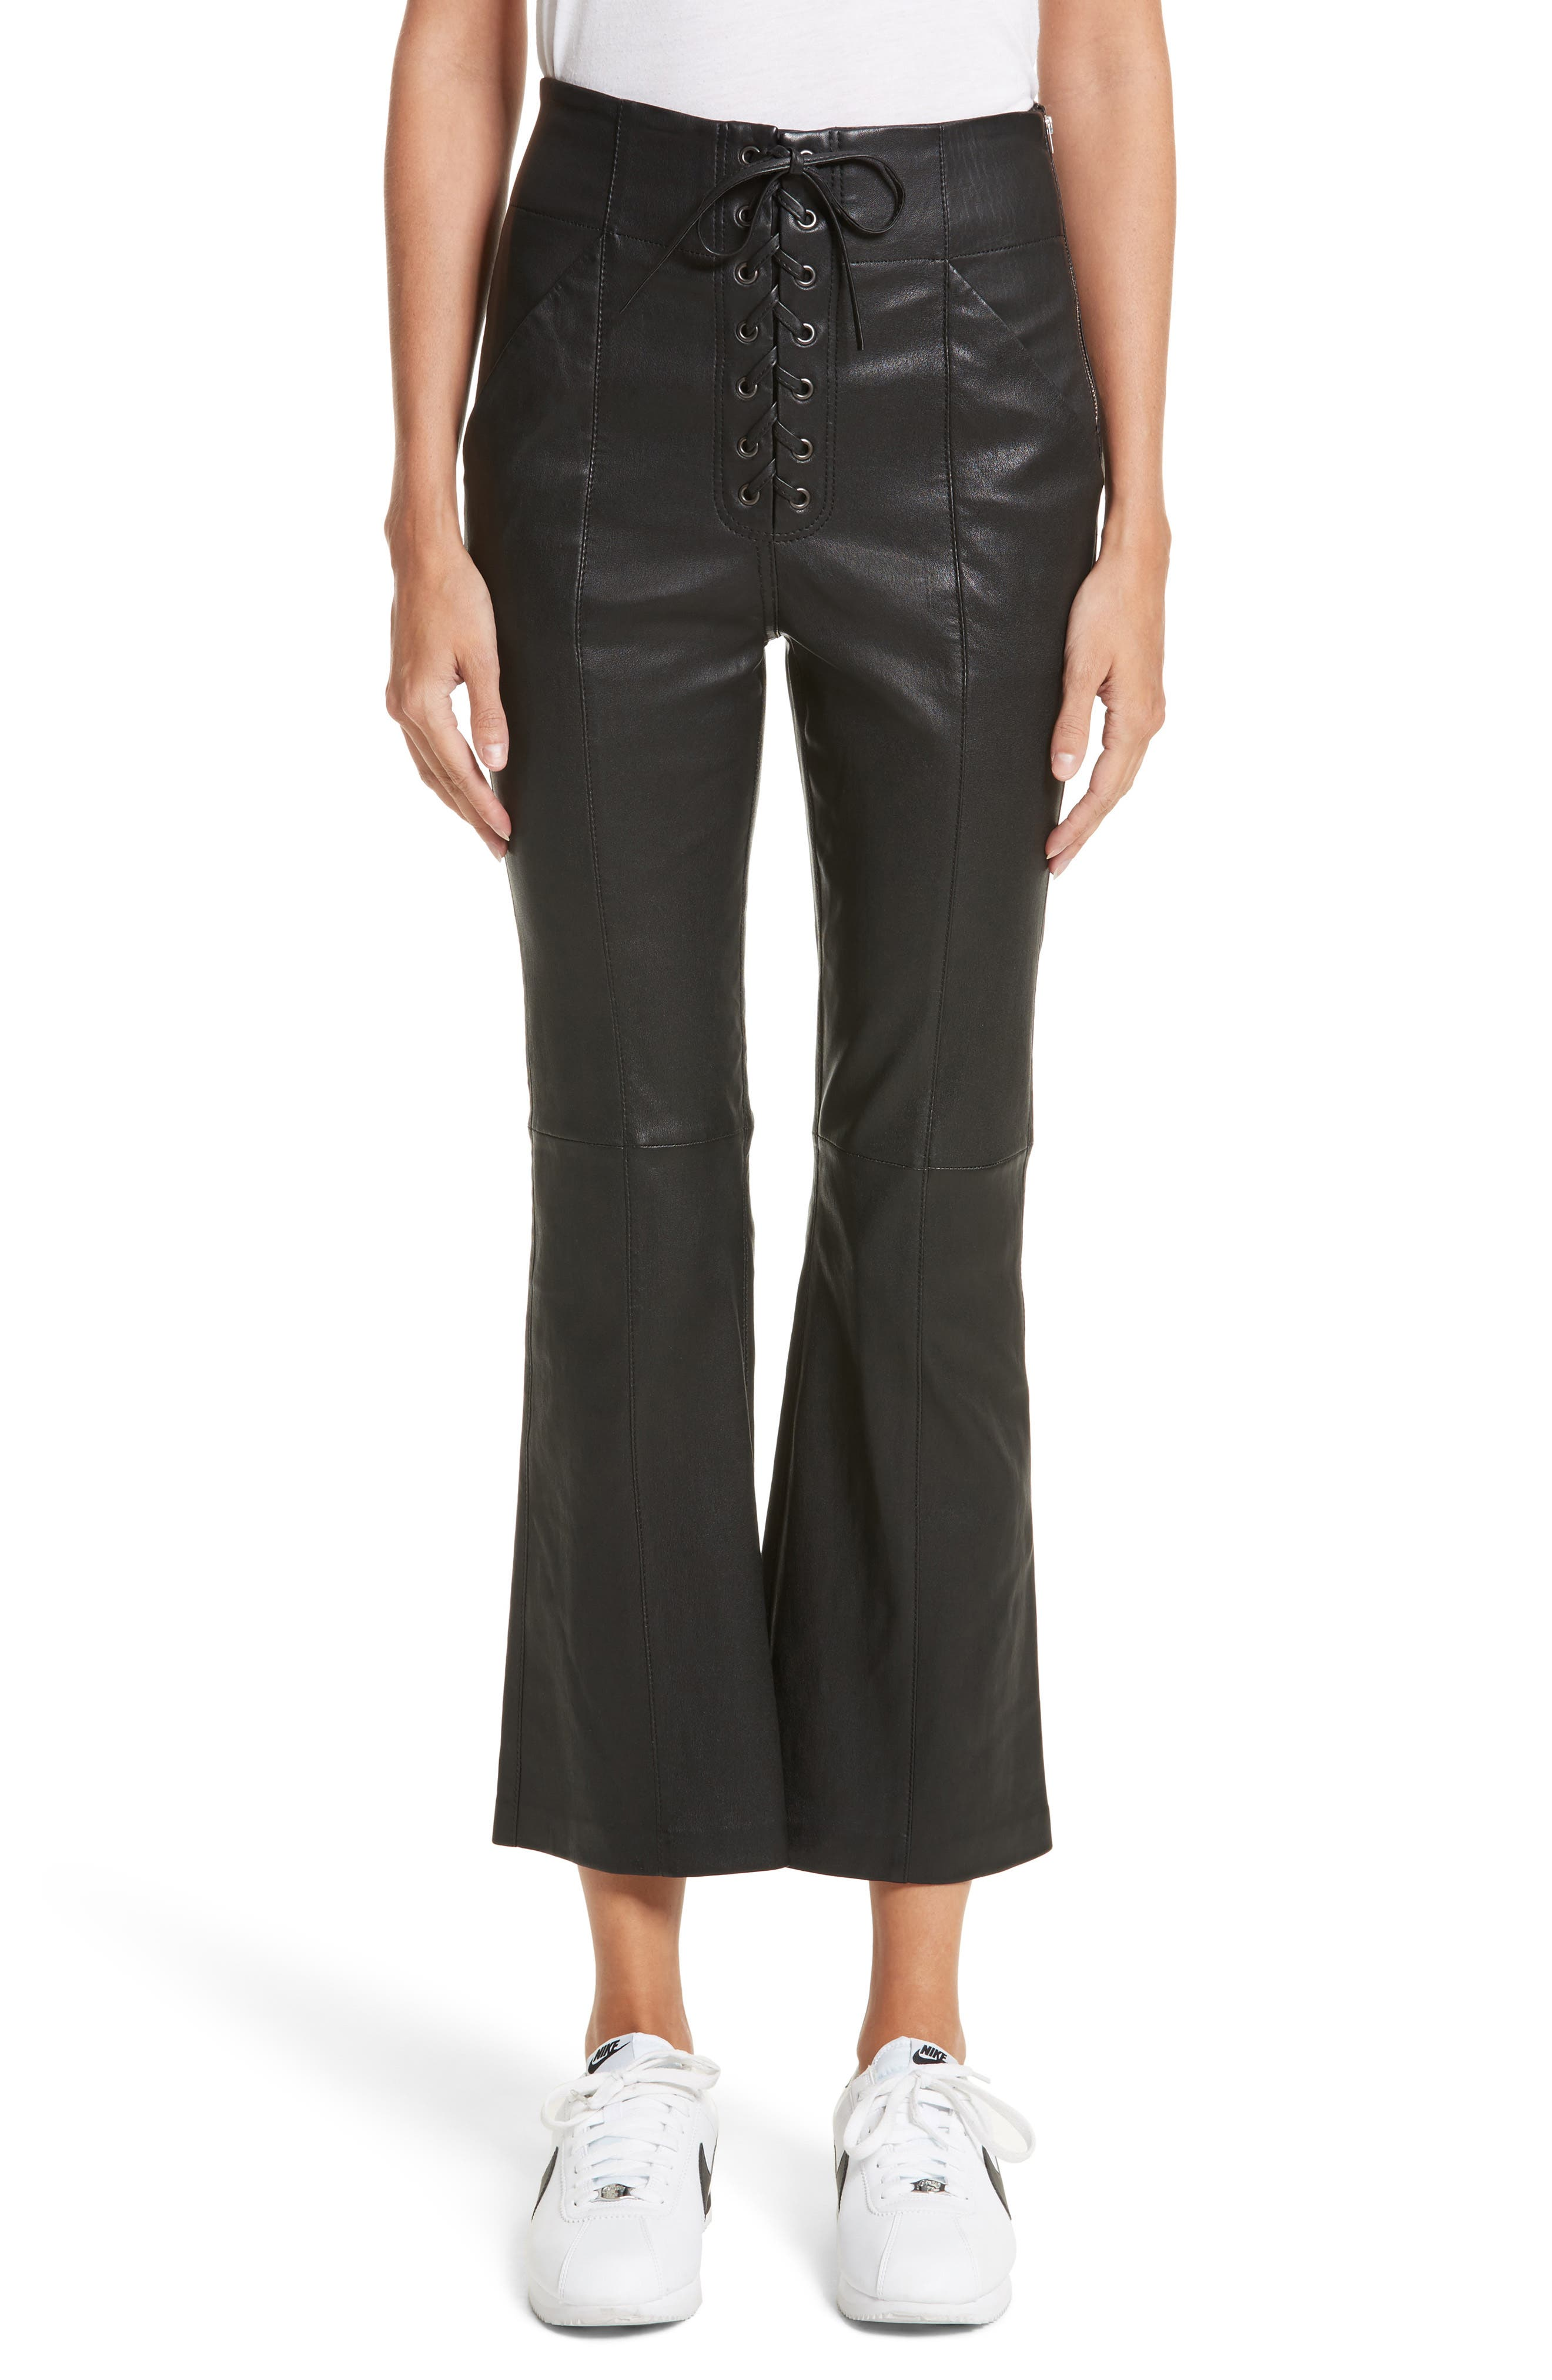 A.L.C. Delia Lace Up Leather Pants